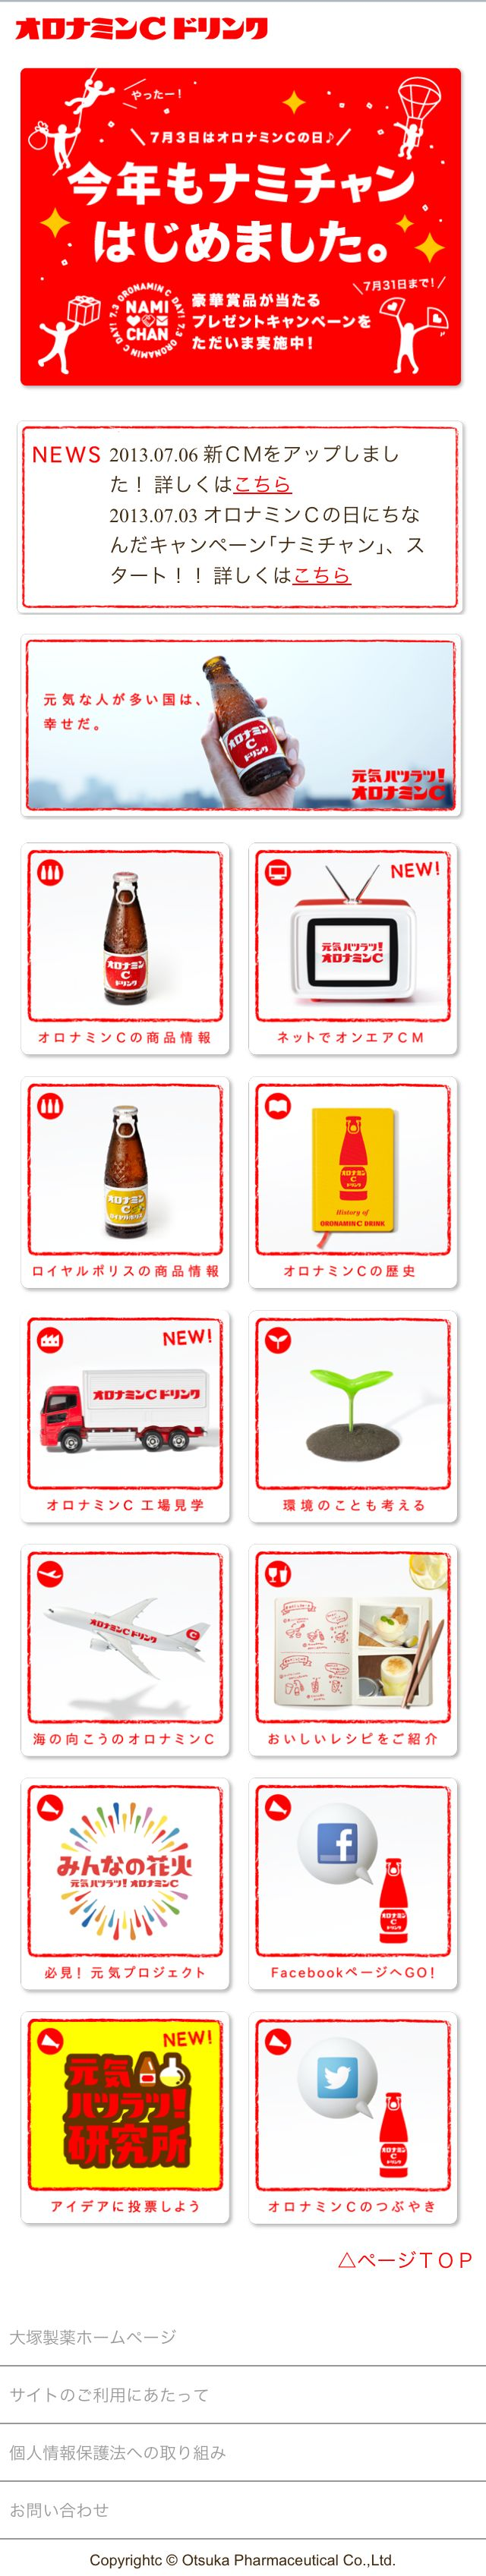 http://www.otsuka.co.jp/orc/sp/index.php